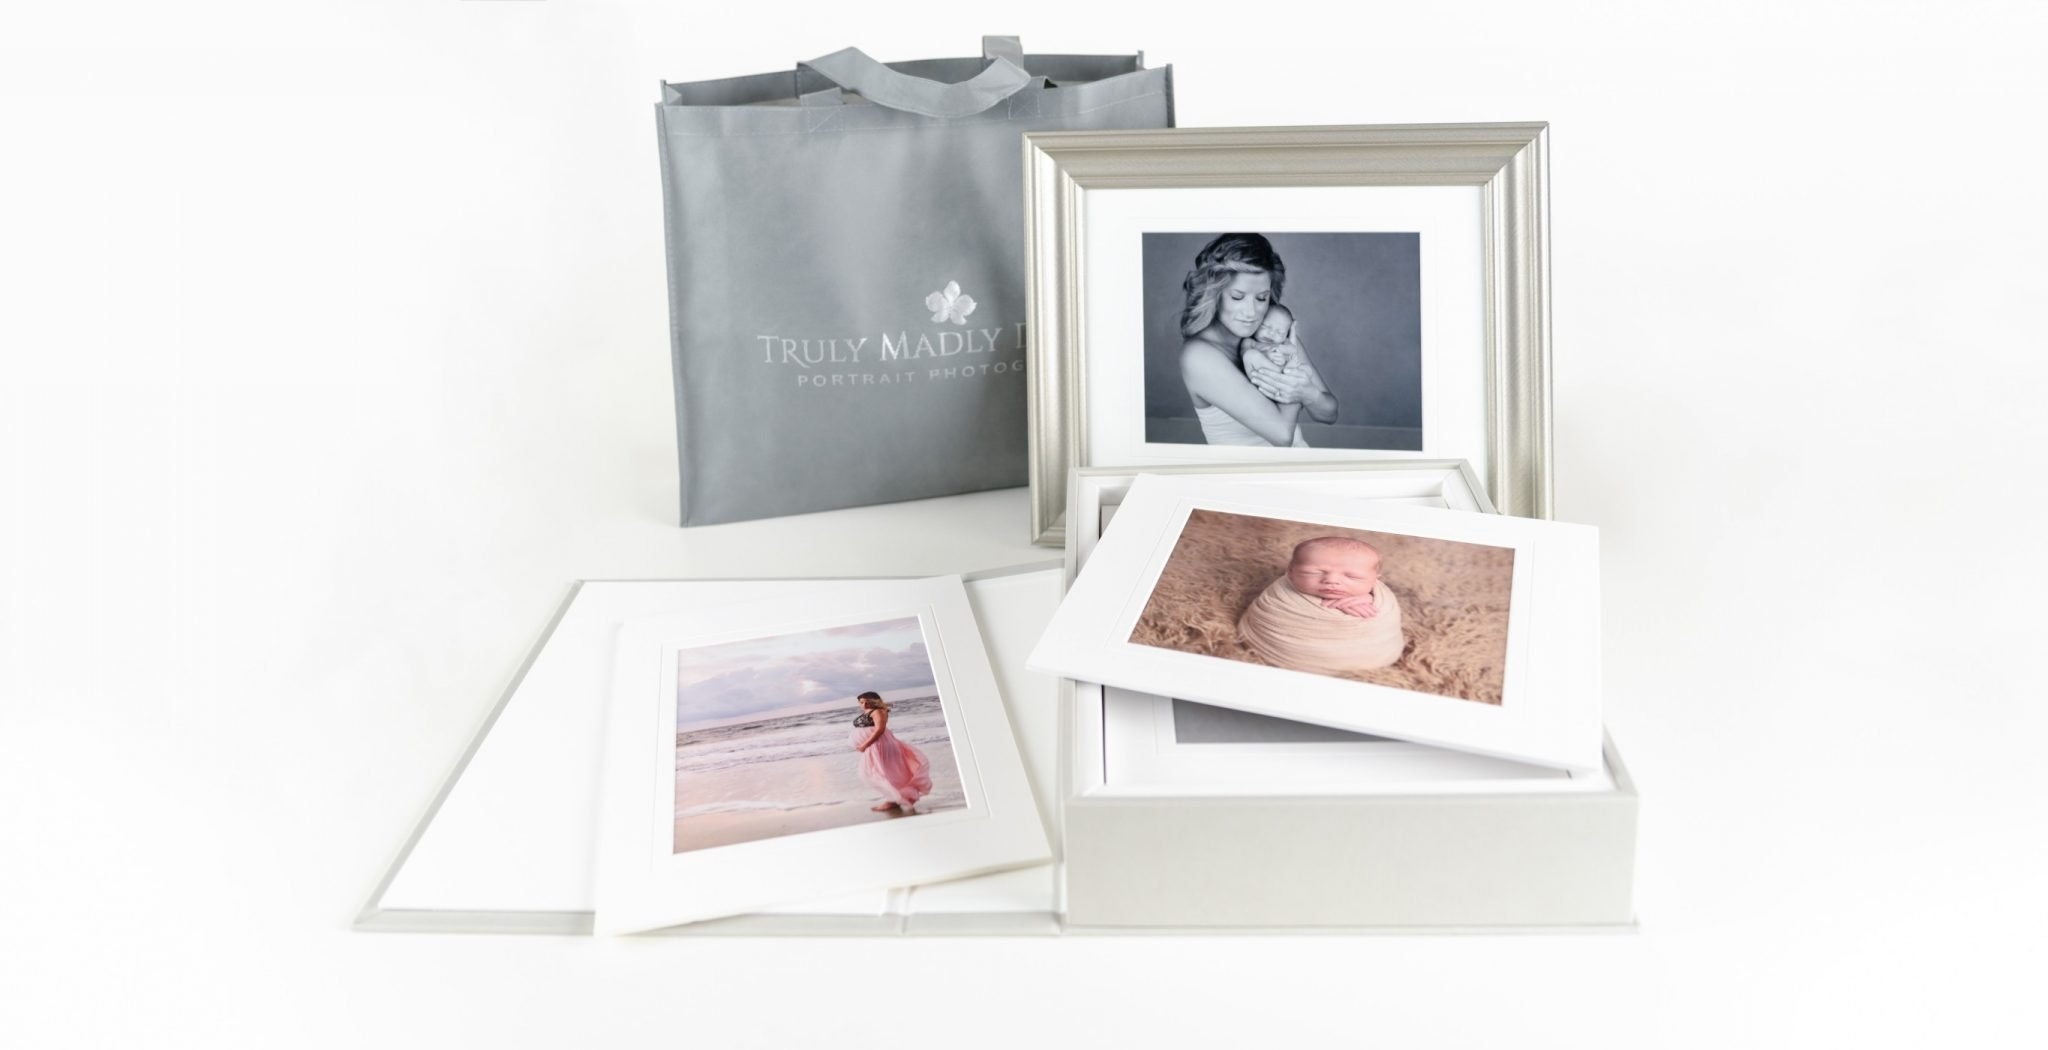 Truly Madly Deeply portrait, maternity and newborn photography offers exclusive Lindeza Portrait Collections - wide background image of Lindeza collection https://tmd.photo